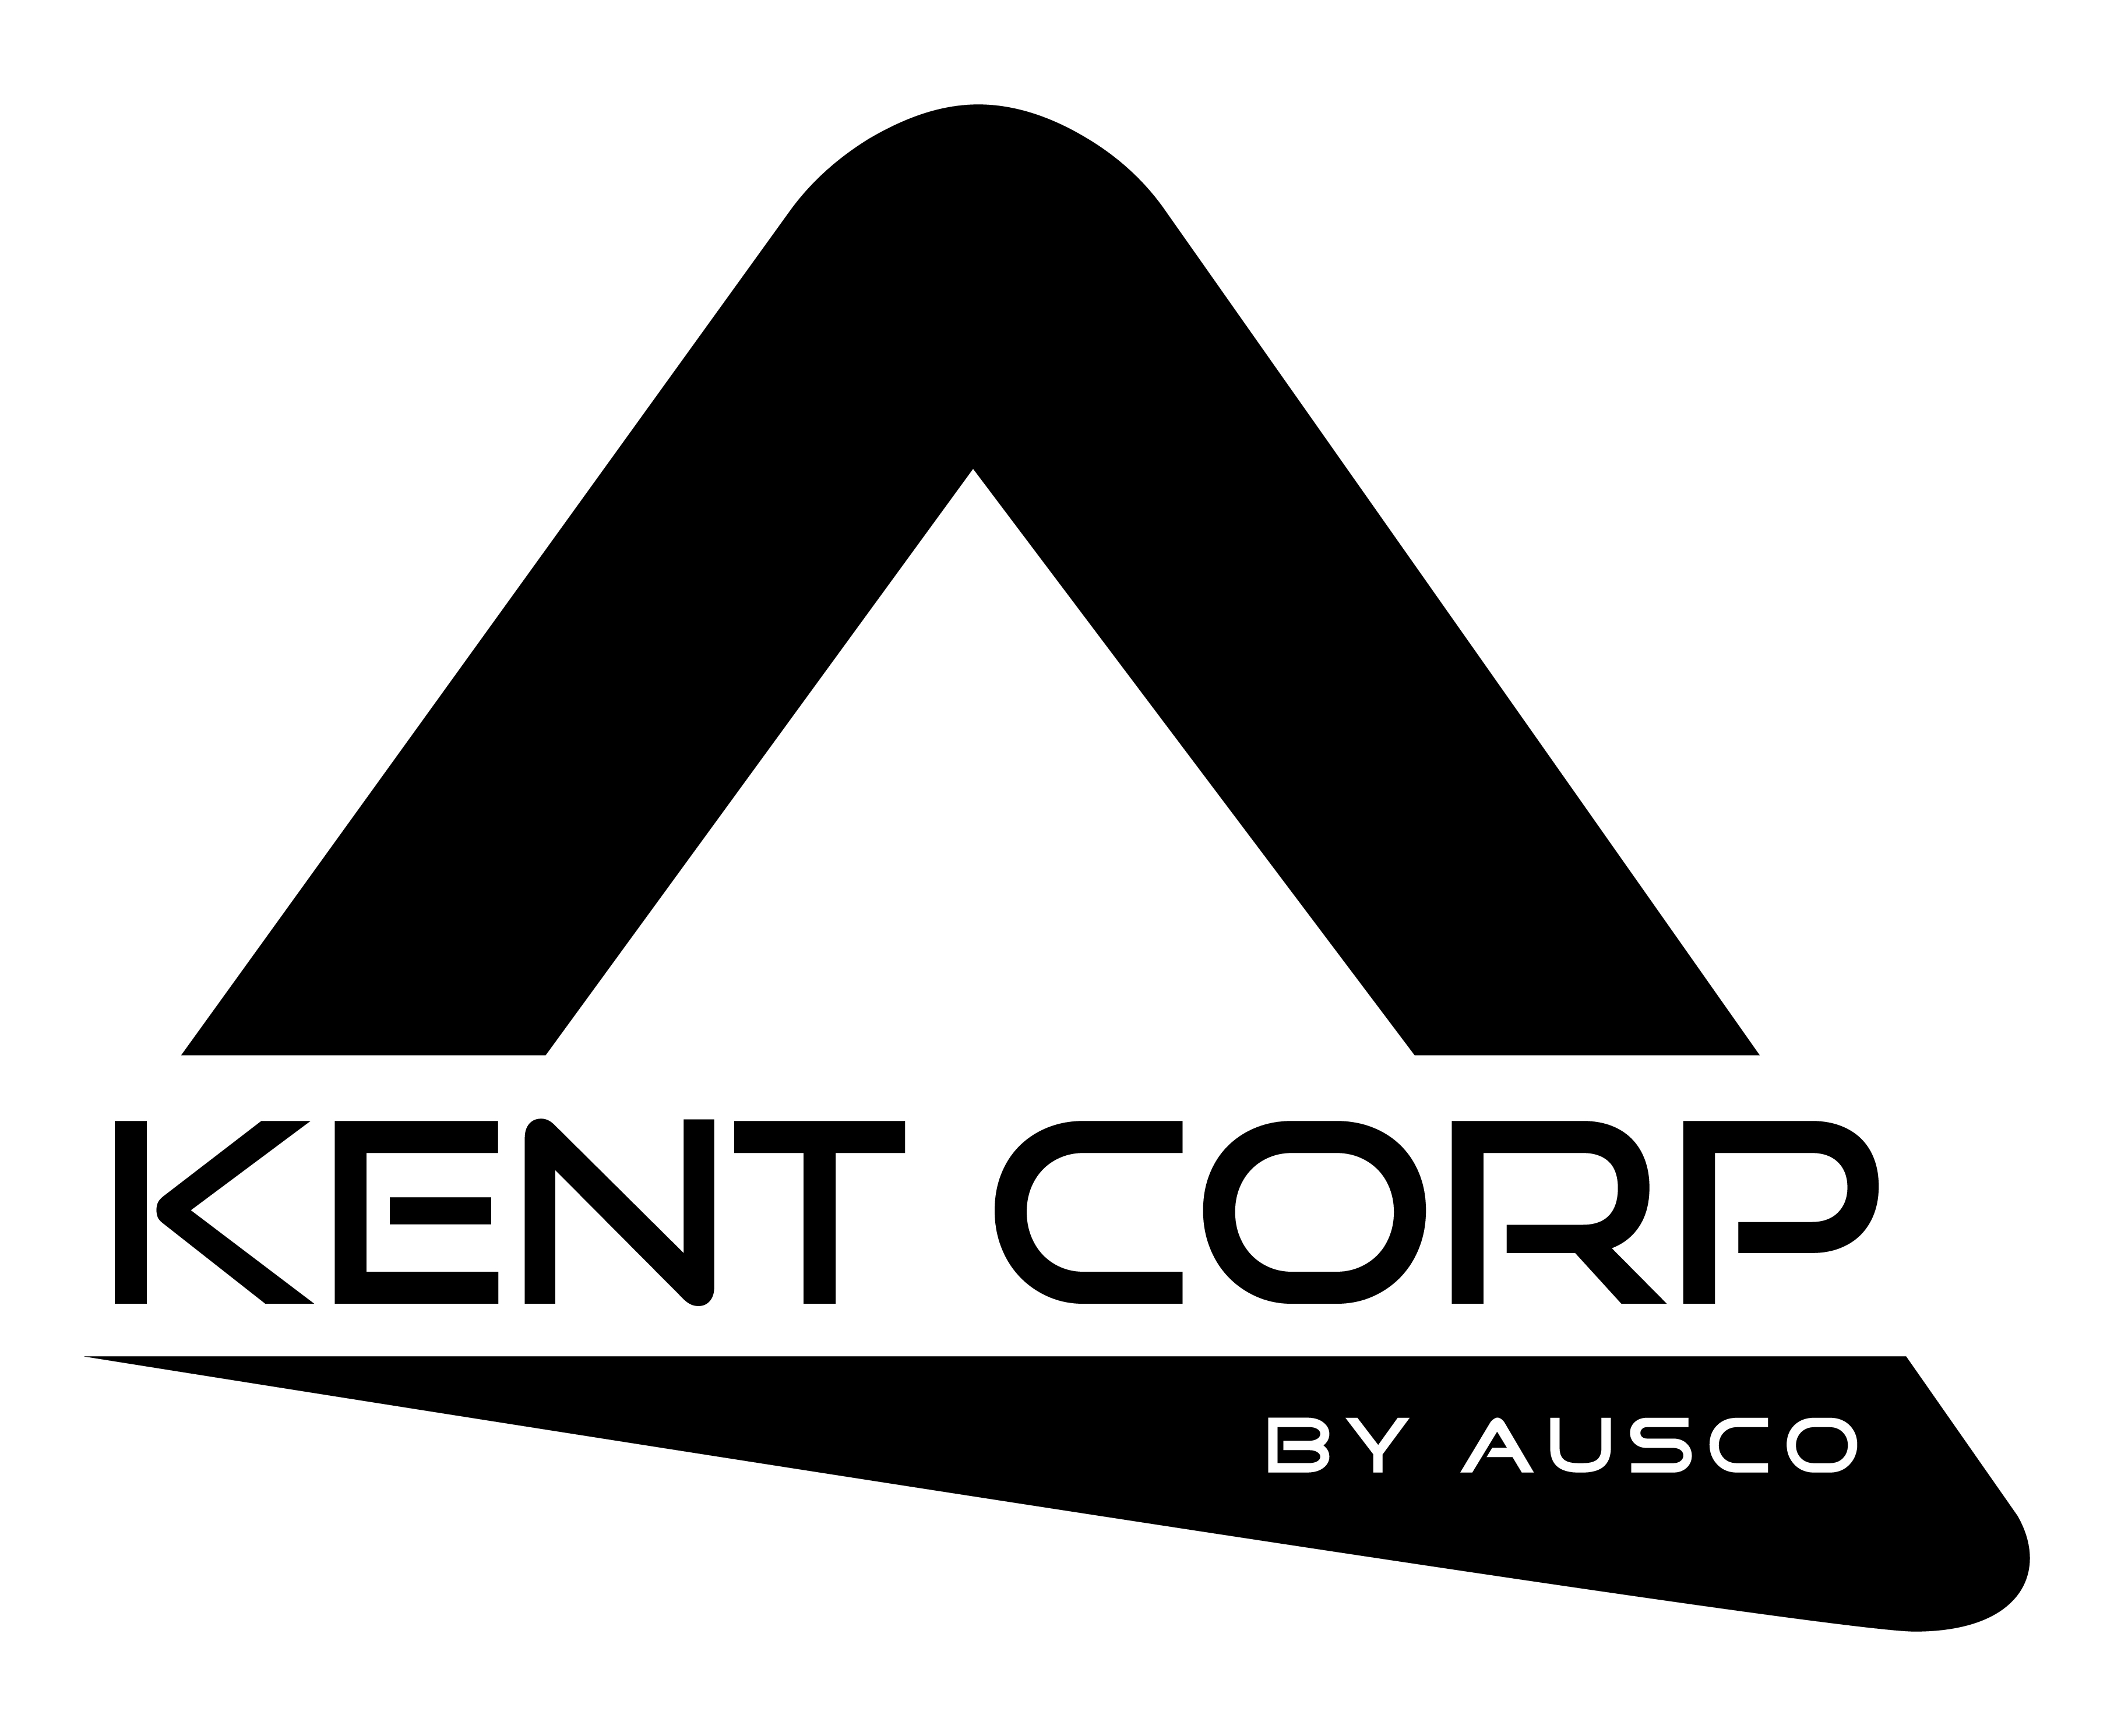 Kent Corp by Ausco